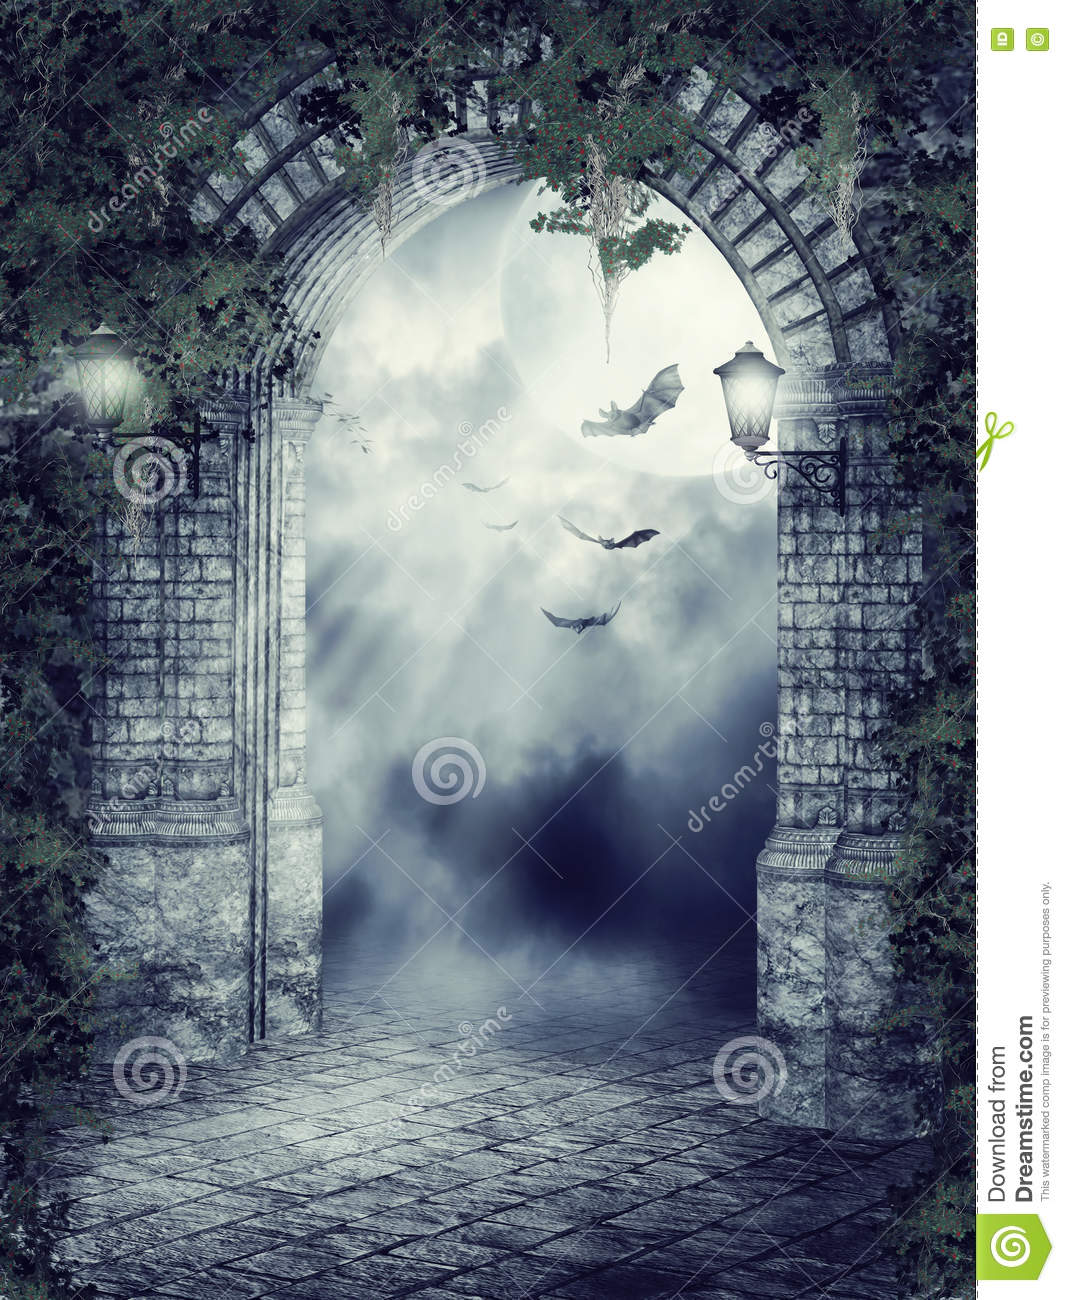 Fantasy gate with bats